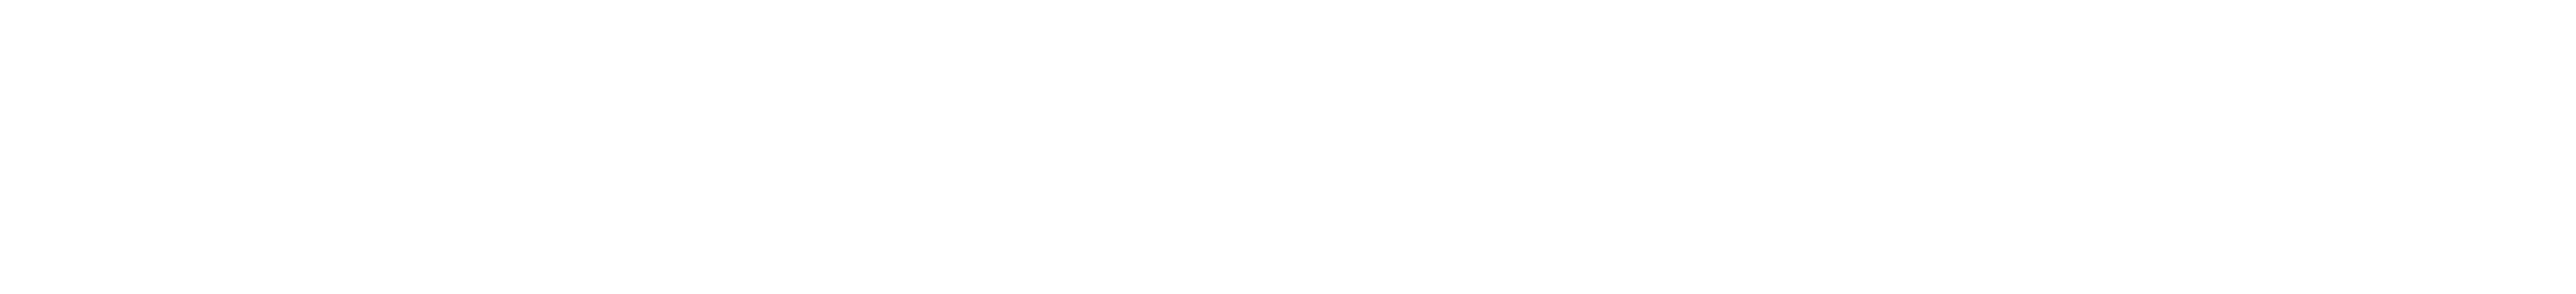 White structure product pattern. Lace clipart cream lace